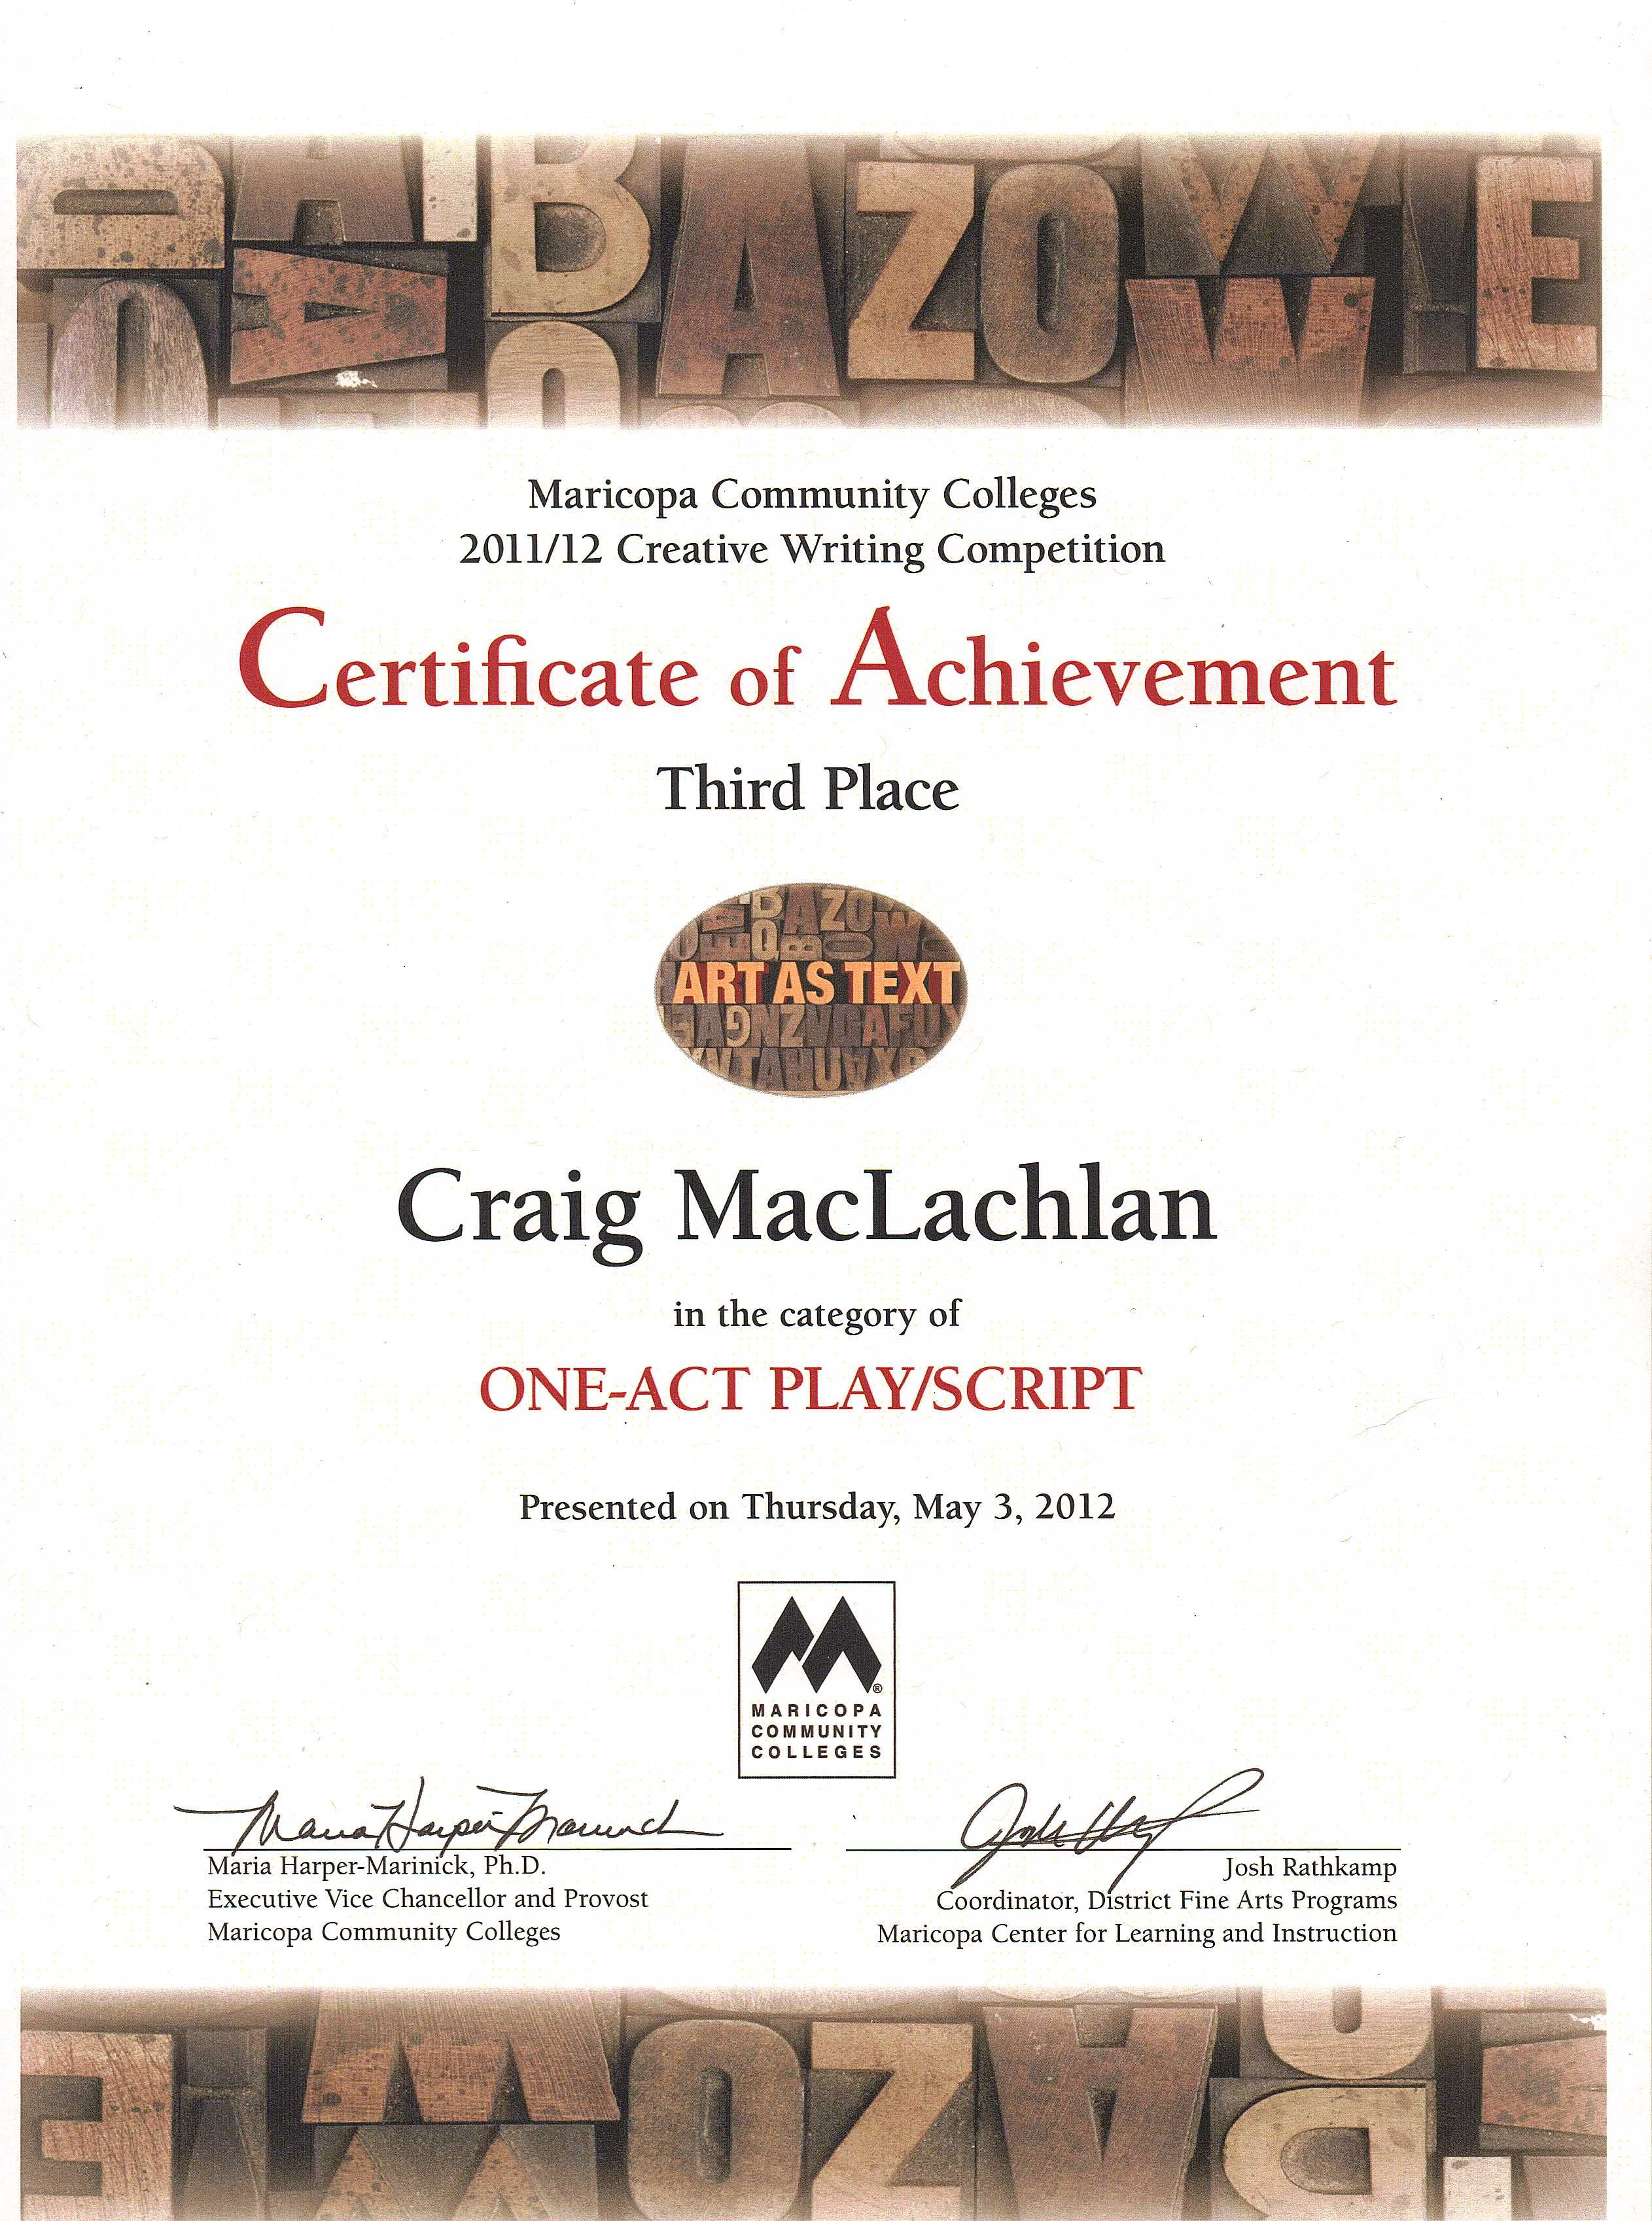 Award for my 3rd place script